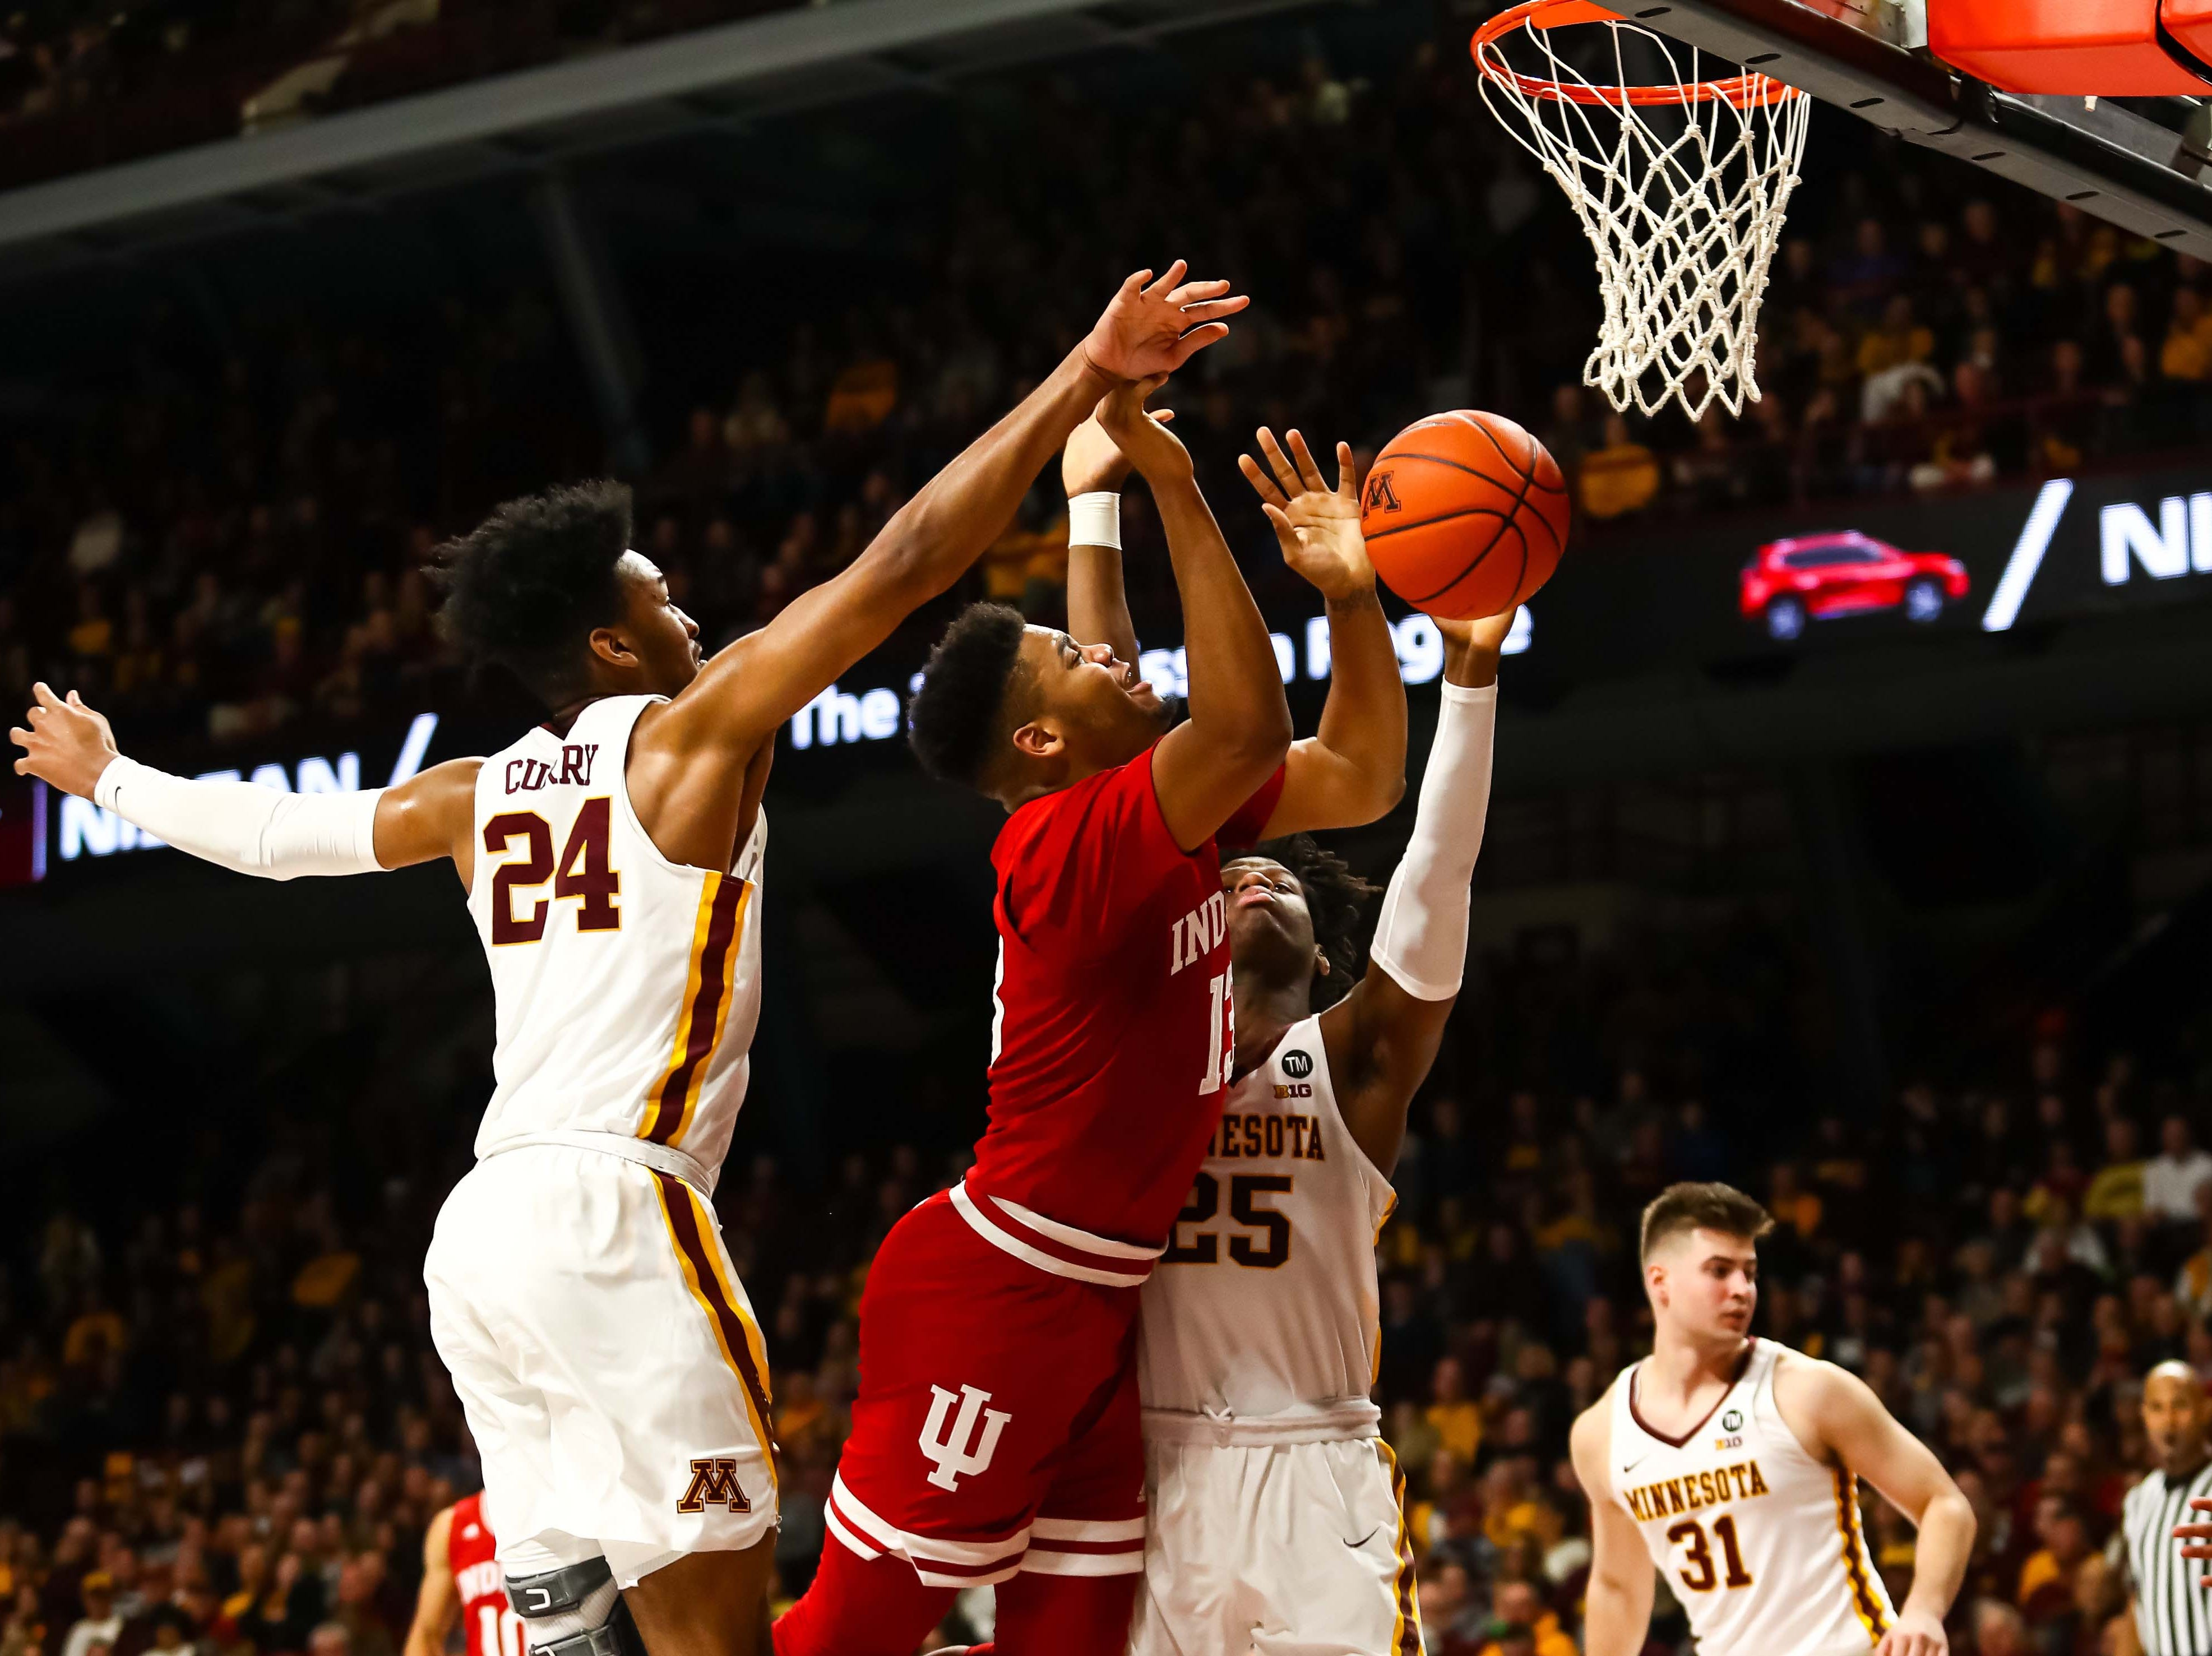 Feb 16, 2019; Minneapolis, MN, USA; Indiana Hoosiers forward Juwan Morgan (13) is fouled by Minnesota Golden Gophers center Daniel Oturu (25) in the second half at Williams Arena. The Minnesota Golden Gophers defeatd the Indiana Hoosiers 84-63. Mandatory Credit: David Berding-USA TODAY Sports